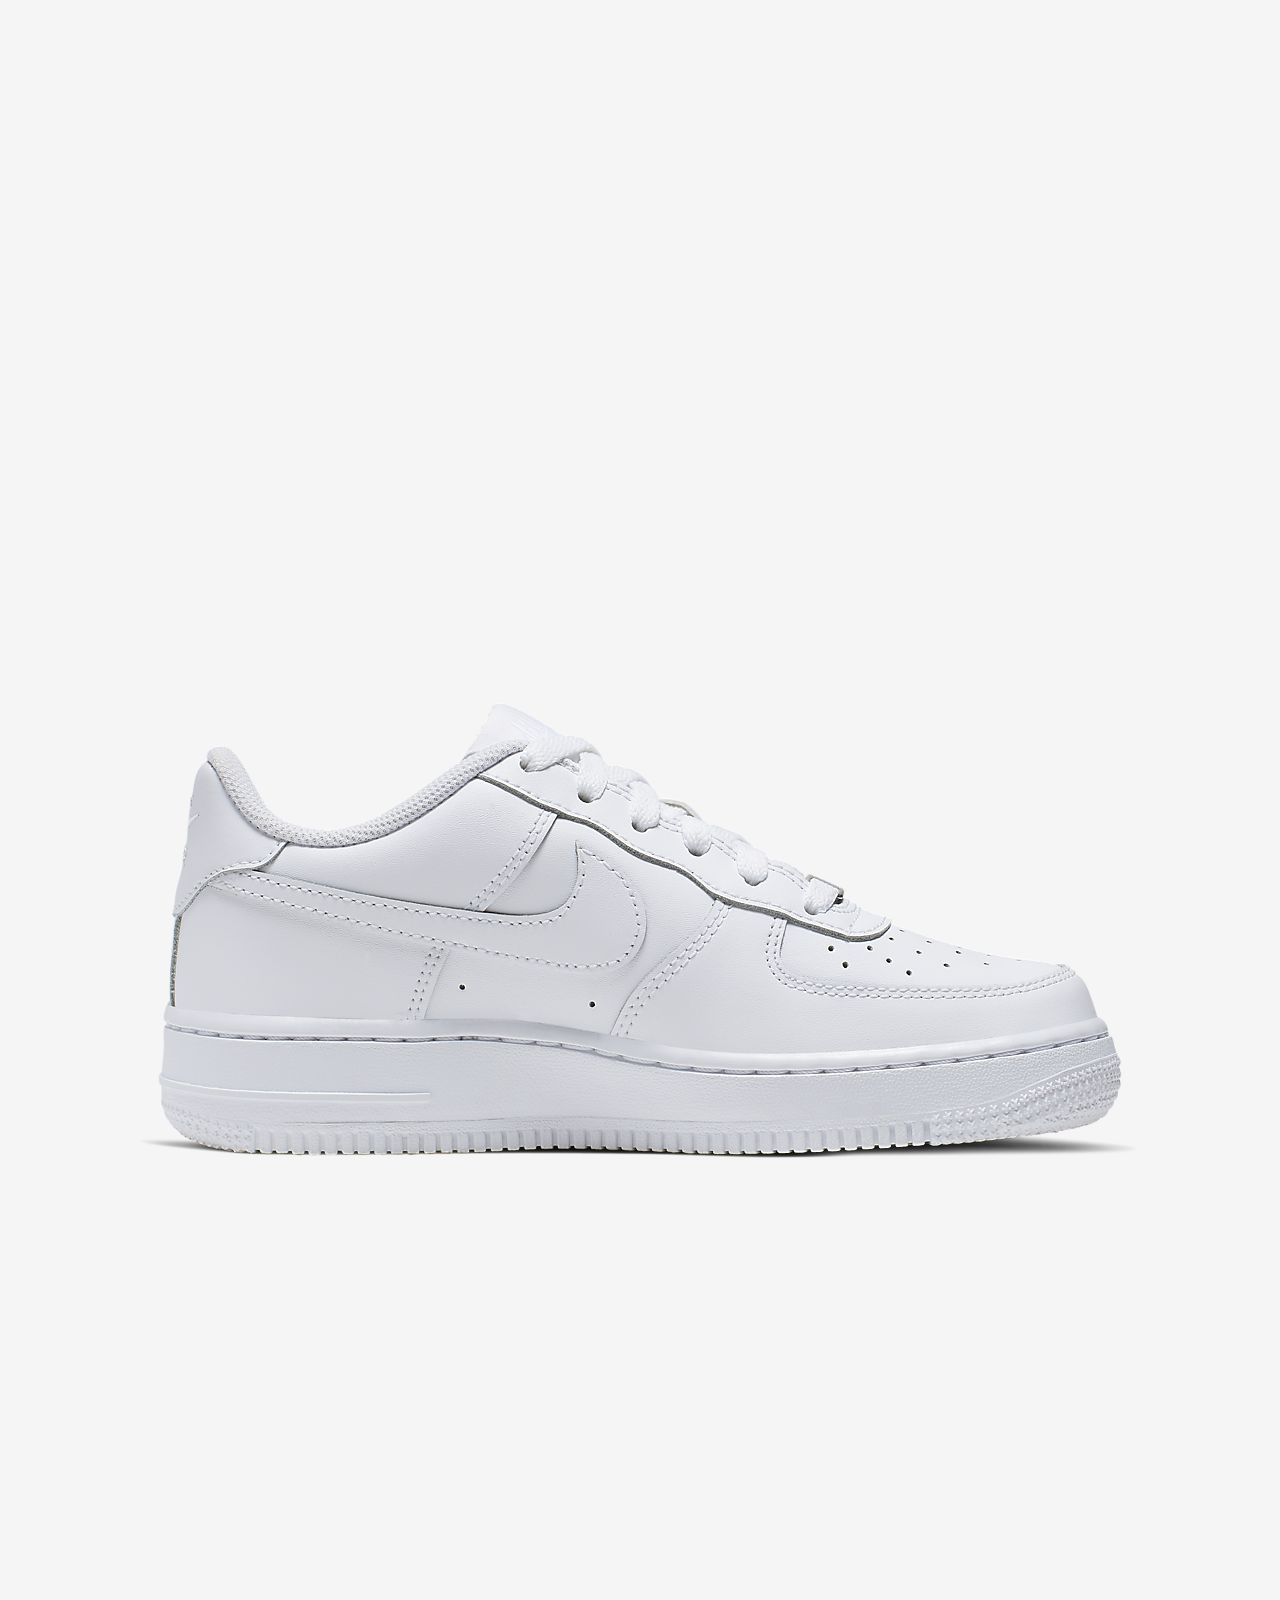 air force 1 5.5 nz